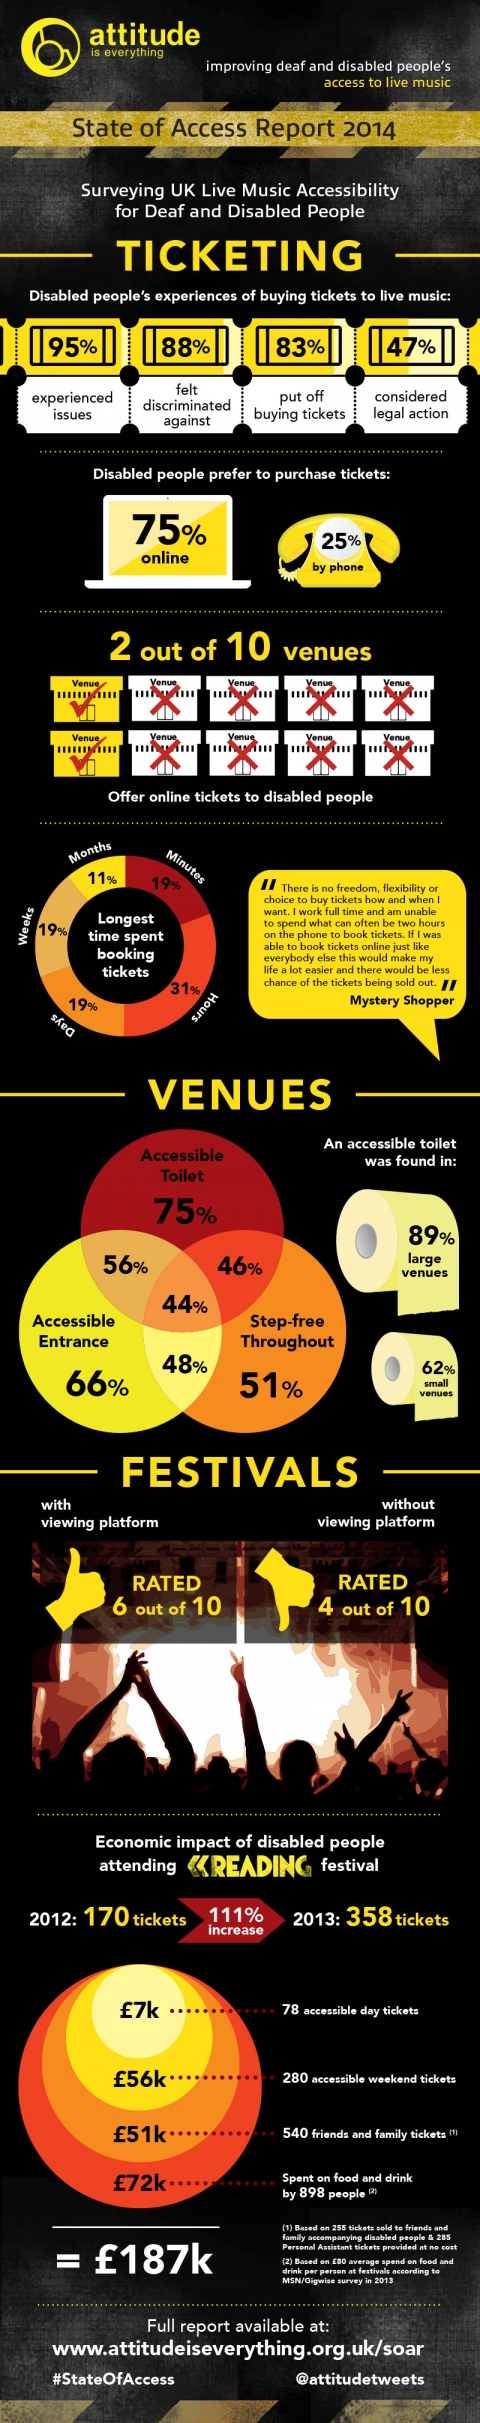 Infographic for the State of Access Report